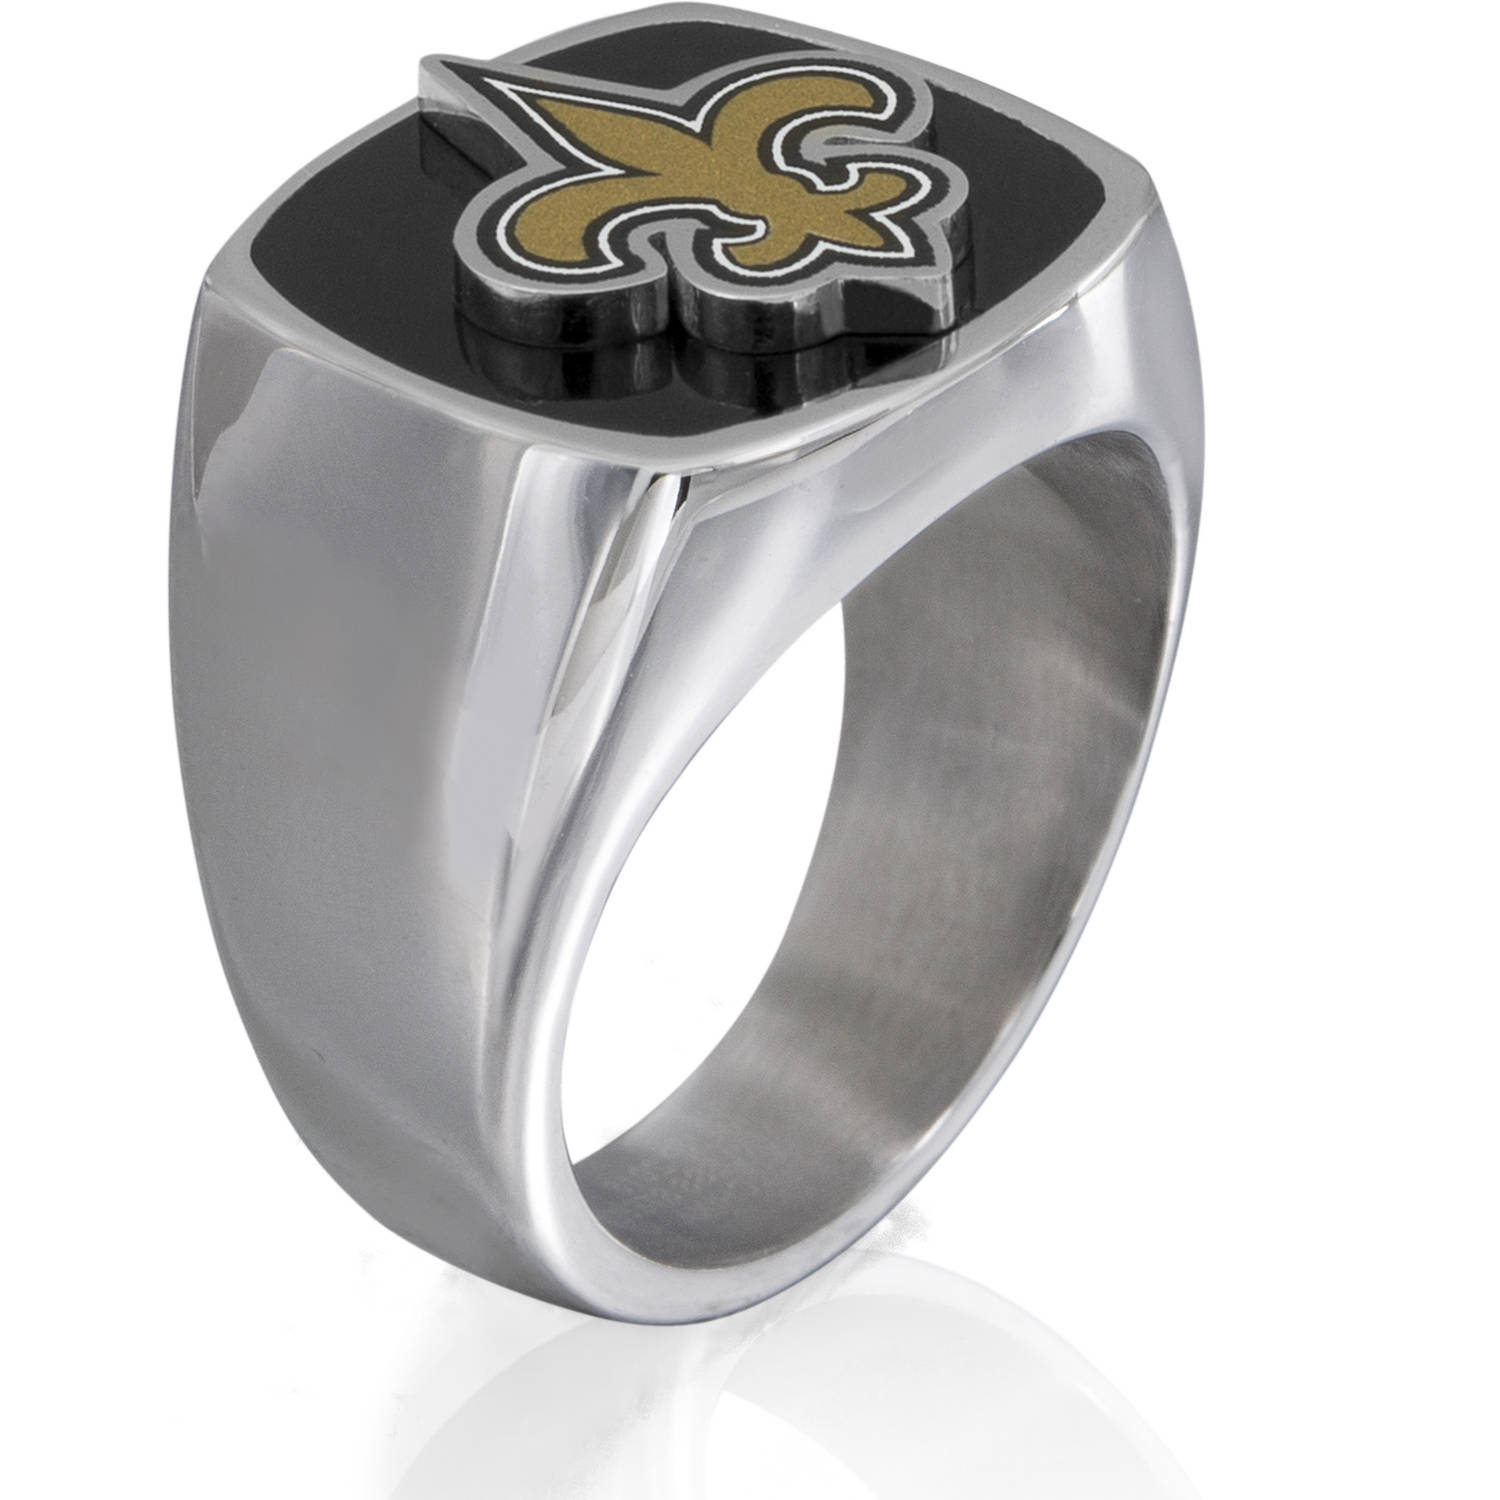 brees ring orleans super dp saints outdoors bowl com sports xliv amazon rings sz drew new